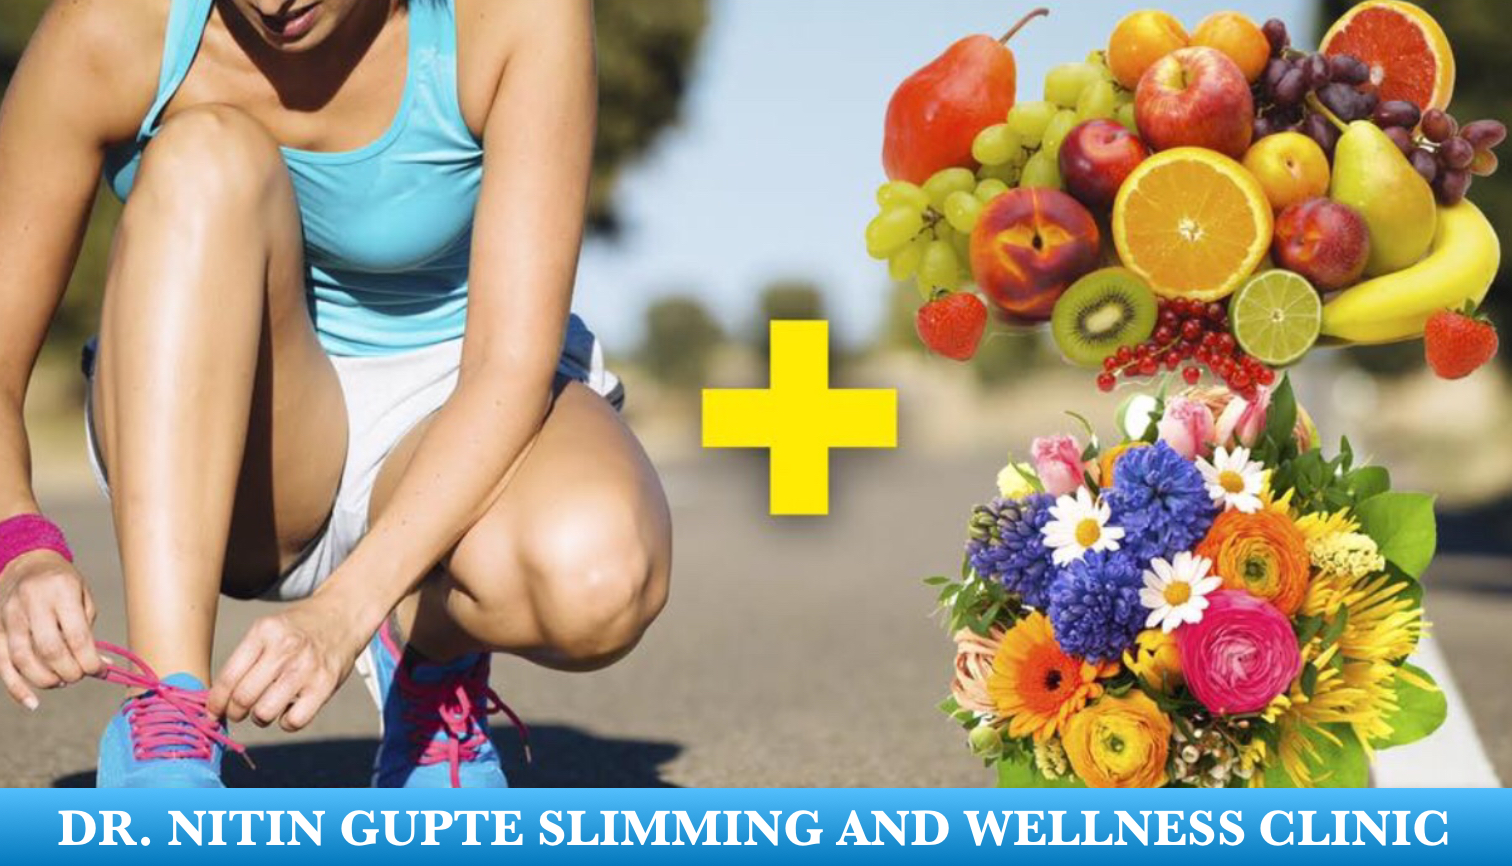 What Makes Us The Best Obesity Clinic In Pune Dr Nitin Gupte